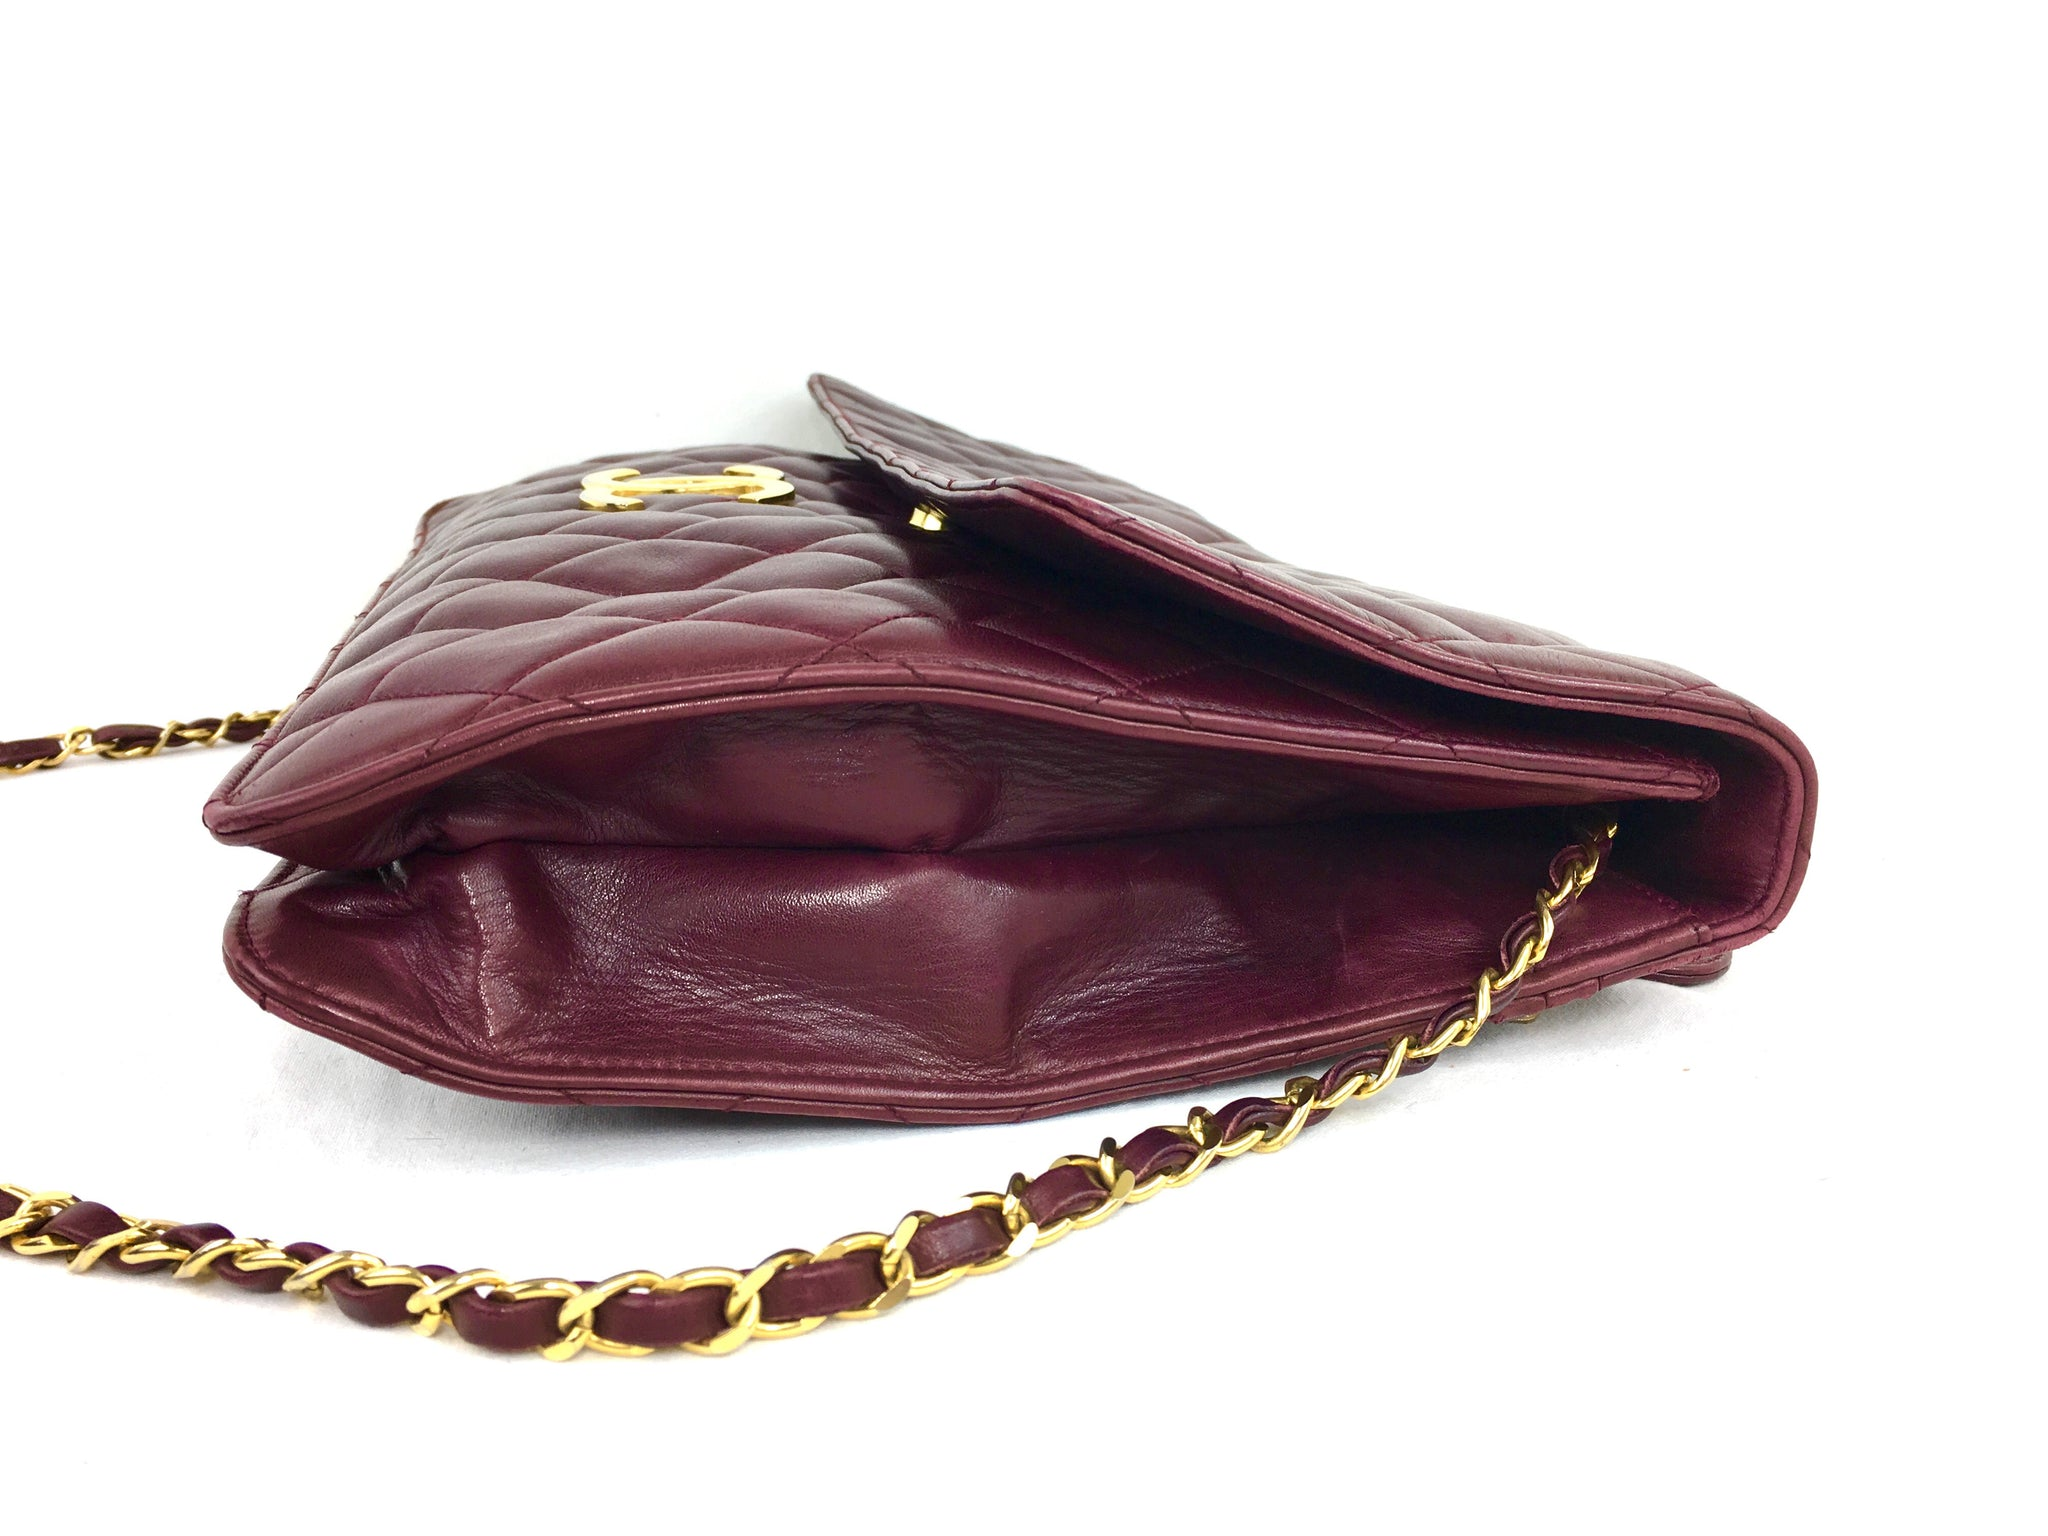 CHANEL Jumbo Quilted Burgundy Flap Bag